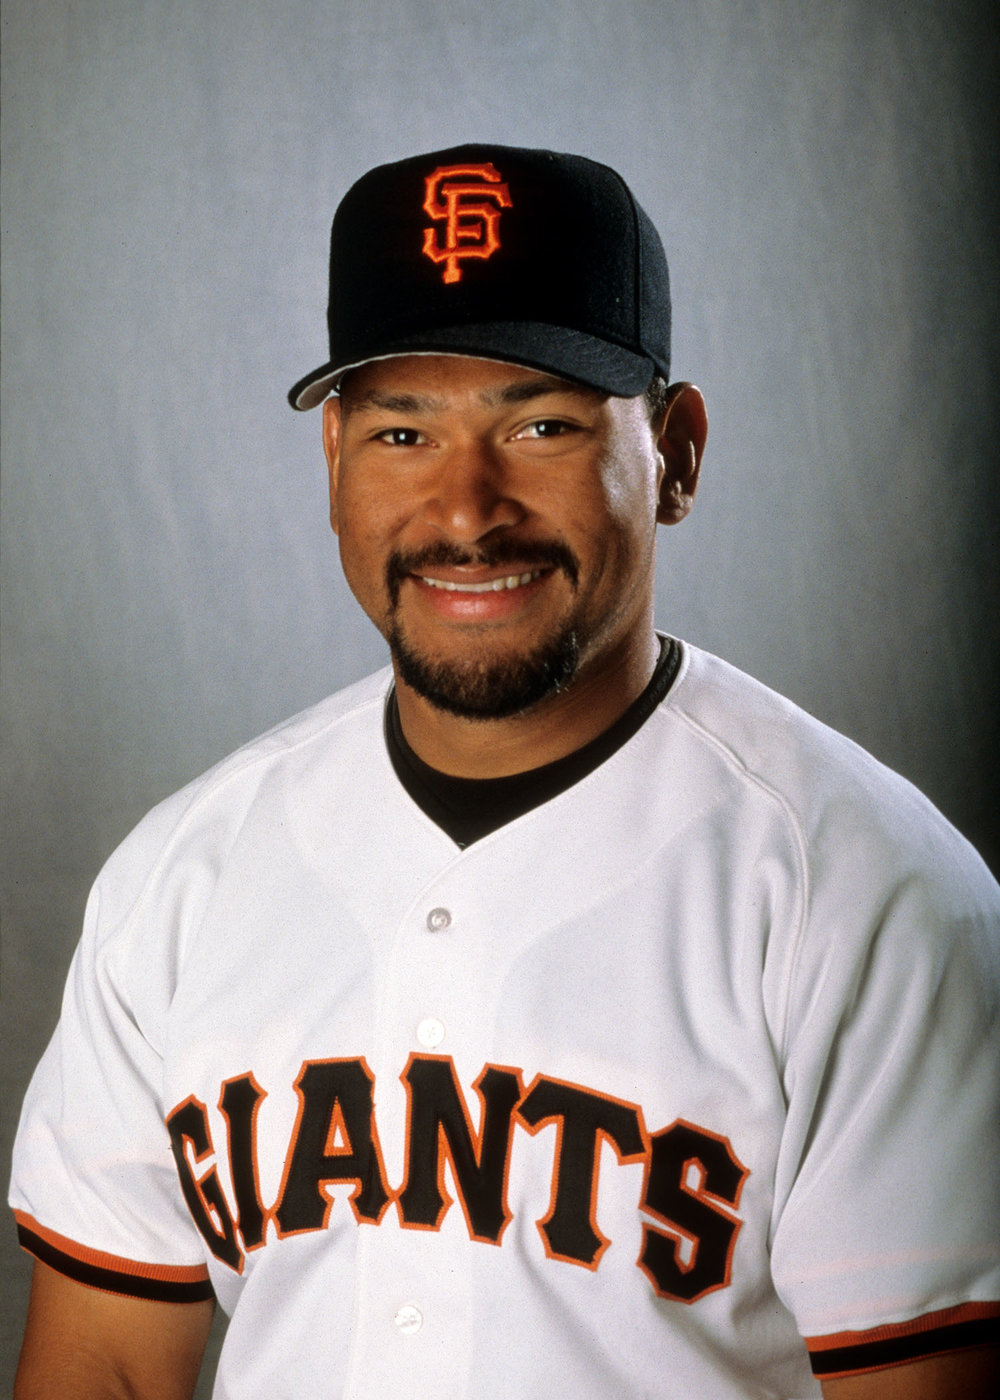 Marvin Benard   Marvin Benard spent nine seasons (1995-2003) as an outfielder with the San Francisco Giants.  Benard is now an analyst with the Giants Spanish flagship radio station KXZM (93.7 FM) calling games alongside Erwin Higueros and Tito Fuentes.